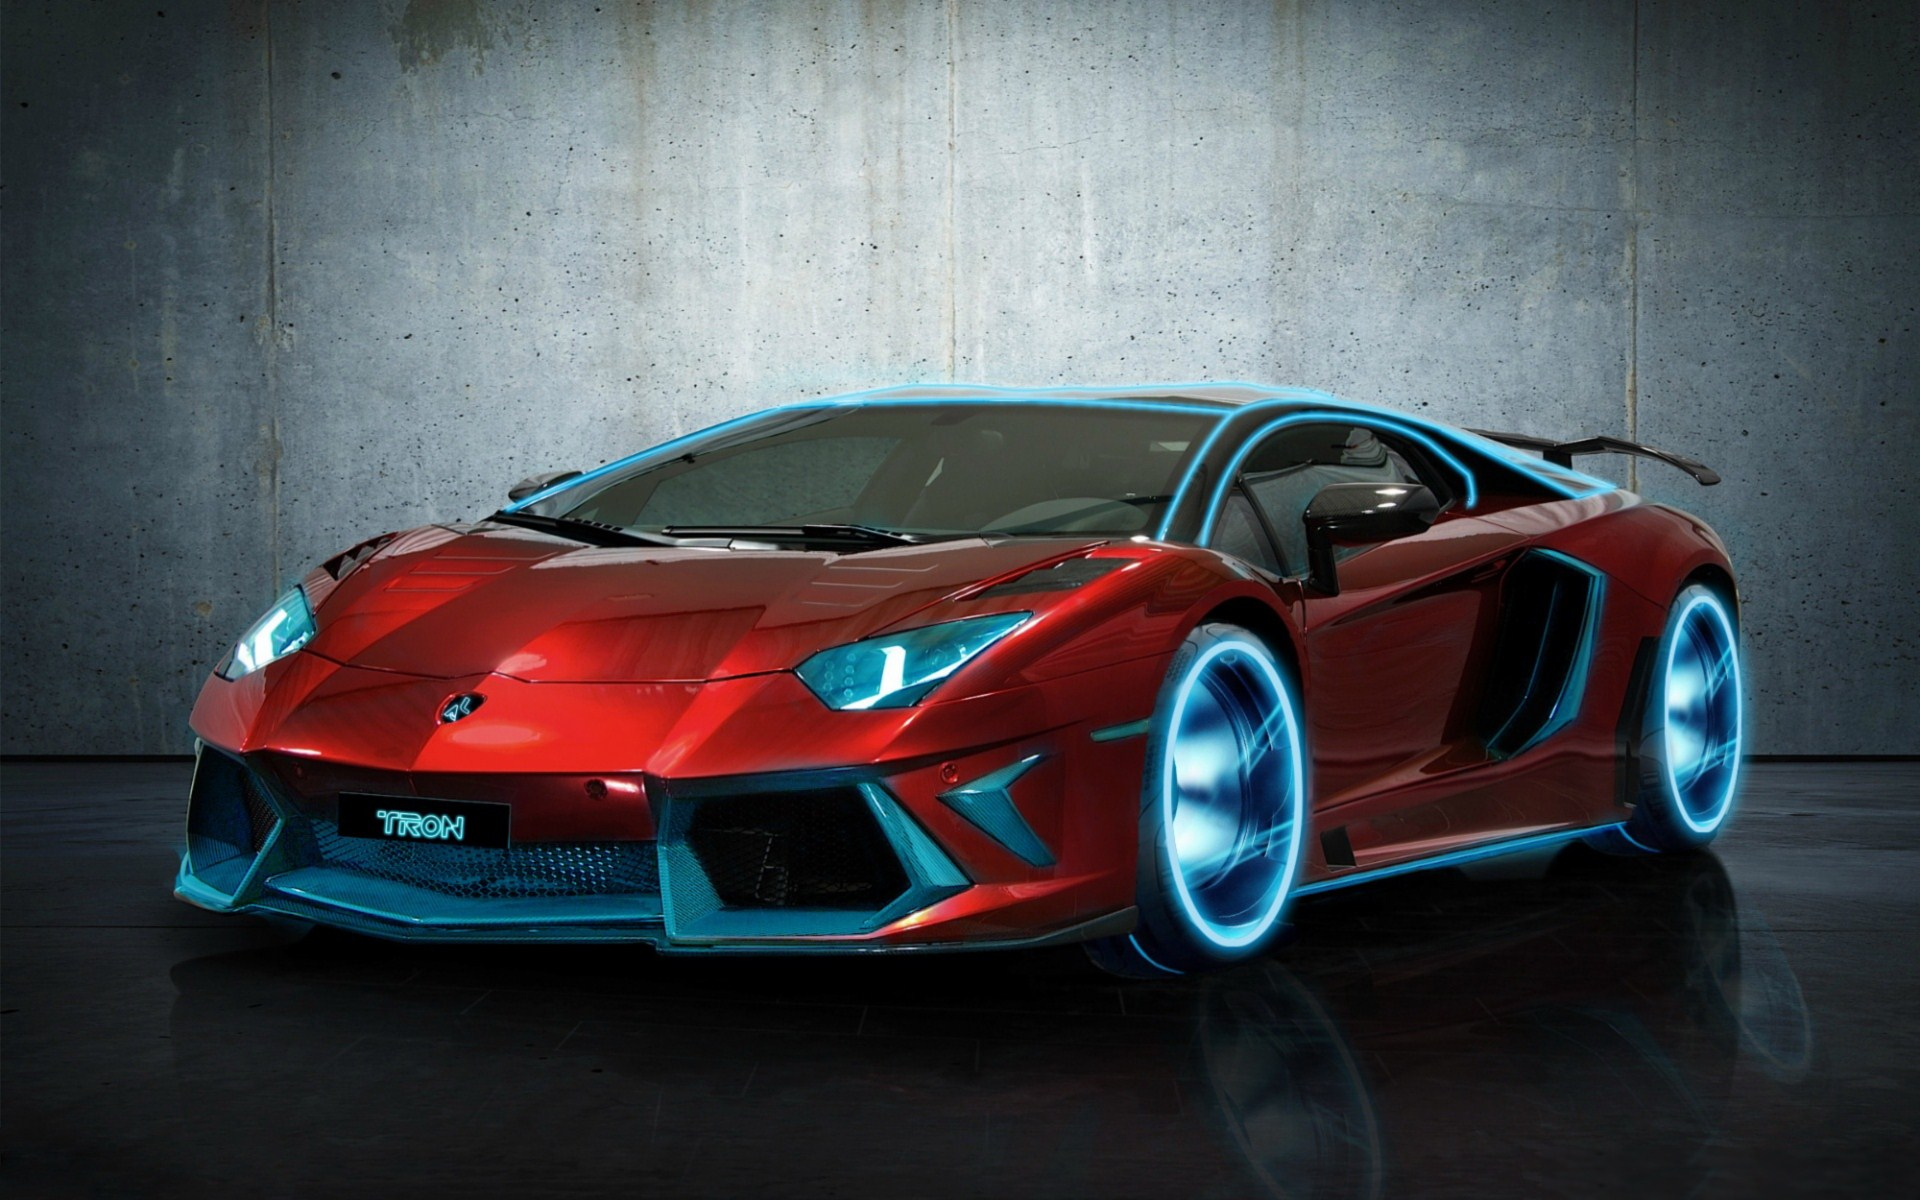 Lamborghini Aventador HD Wallpaper Desktop For Desktop 1920x1200